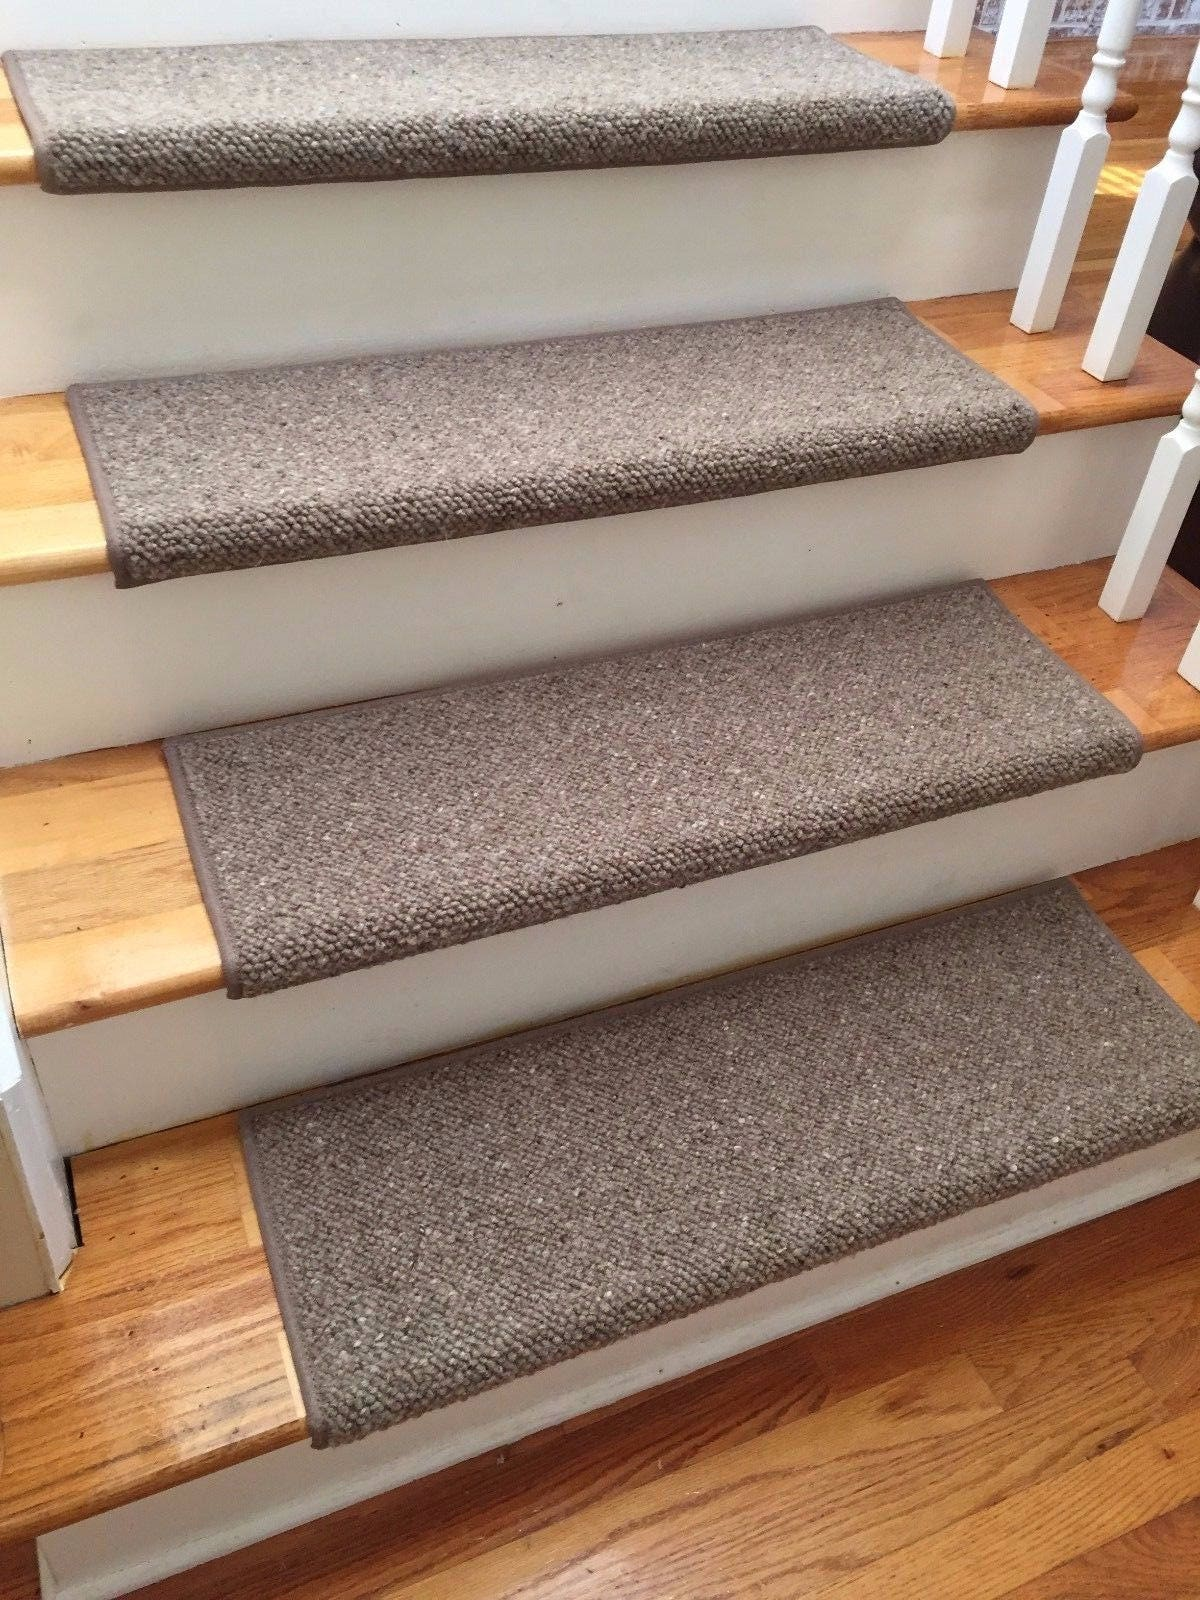 Superior Alfa Brown 100% Wool TRUE Bullnose™ Carpet Stair Tread JMish Handmade Step  Cover Comfort Safety Dog Pet Runner   (Sold Per Step/Each)